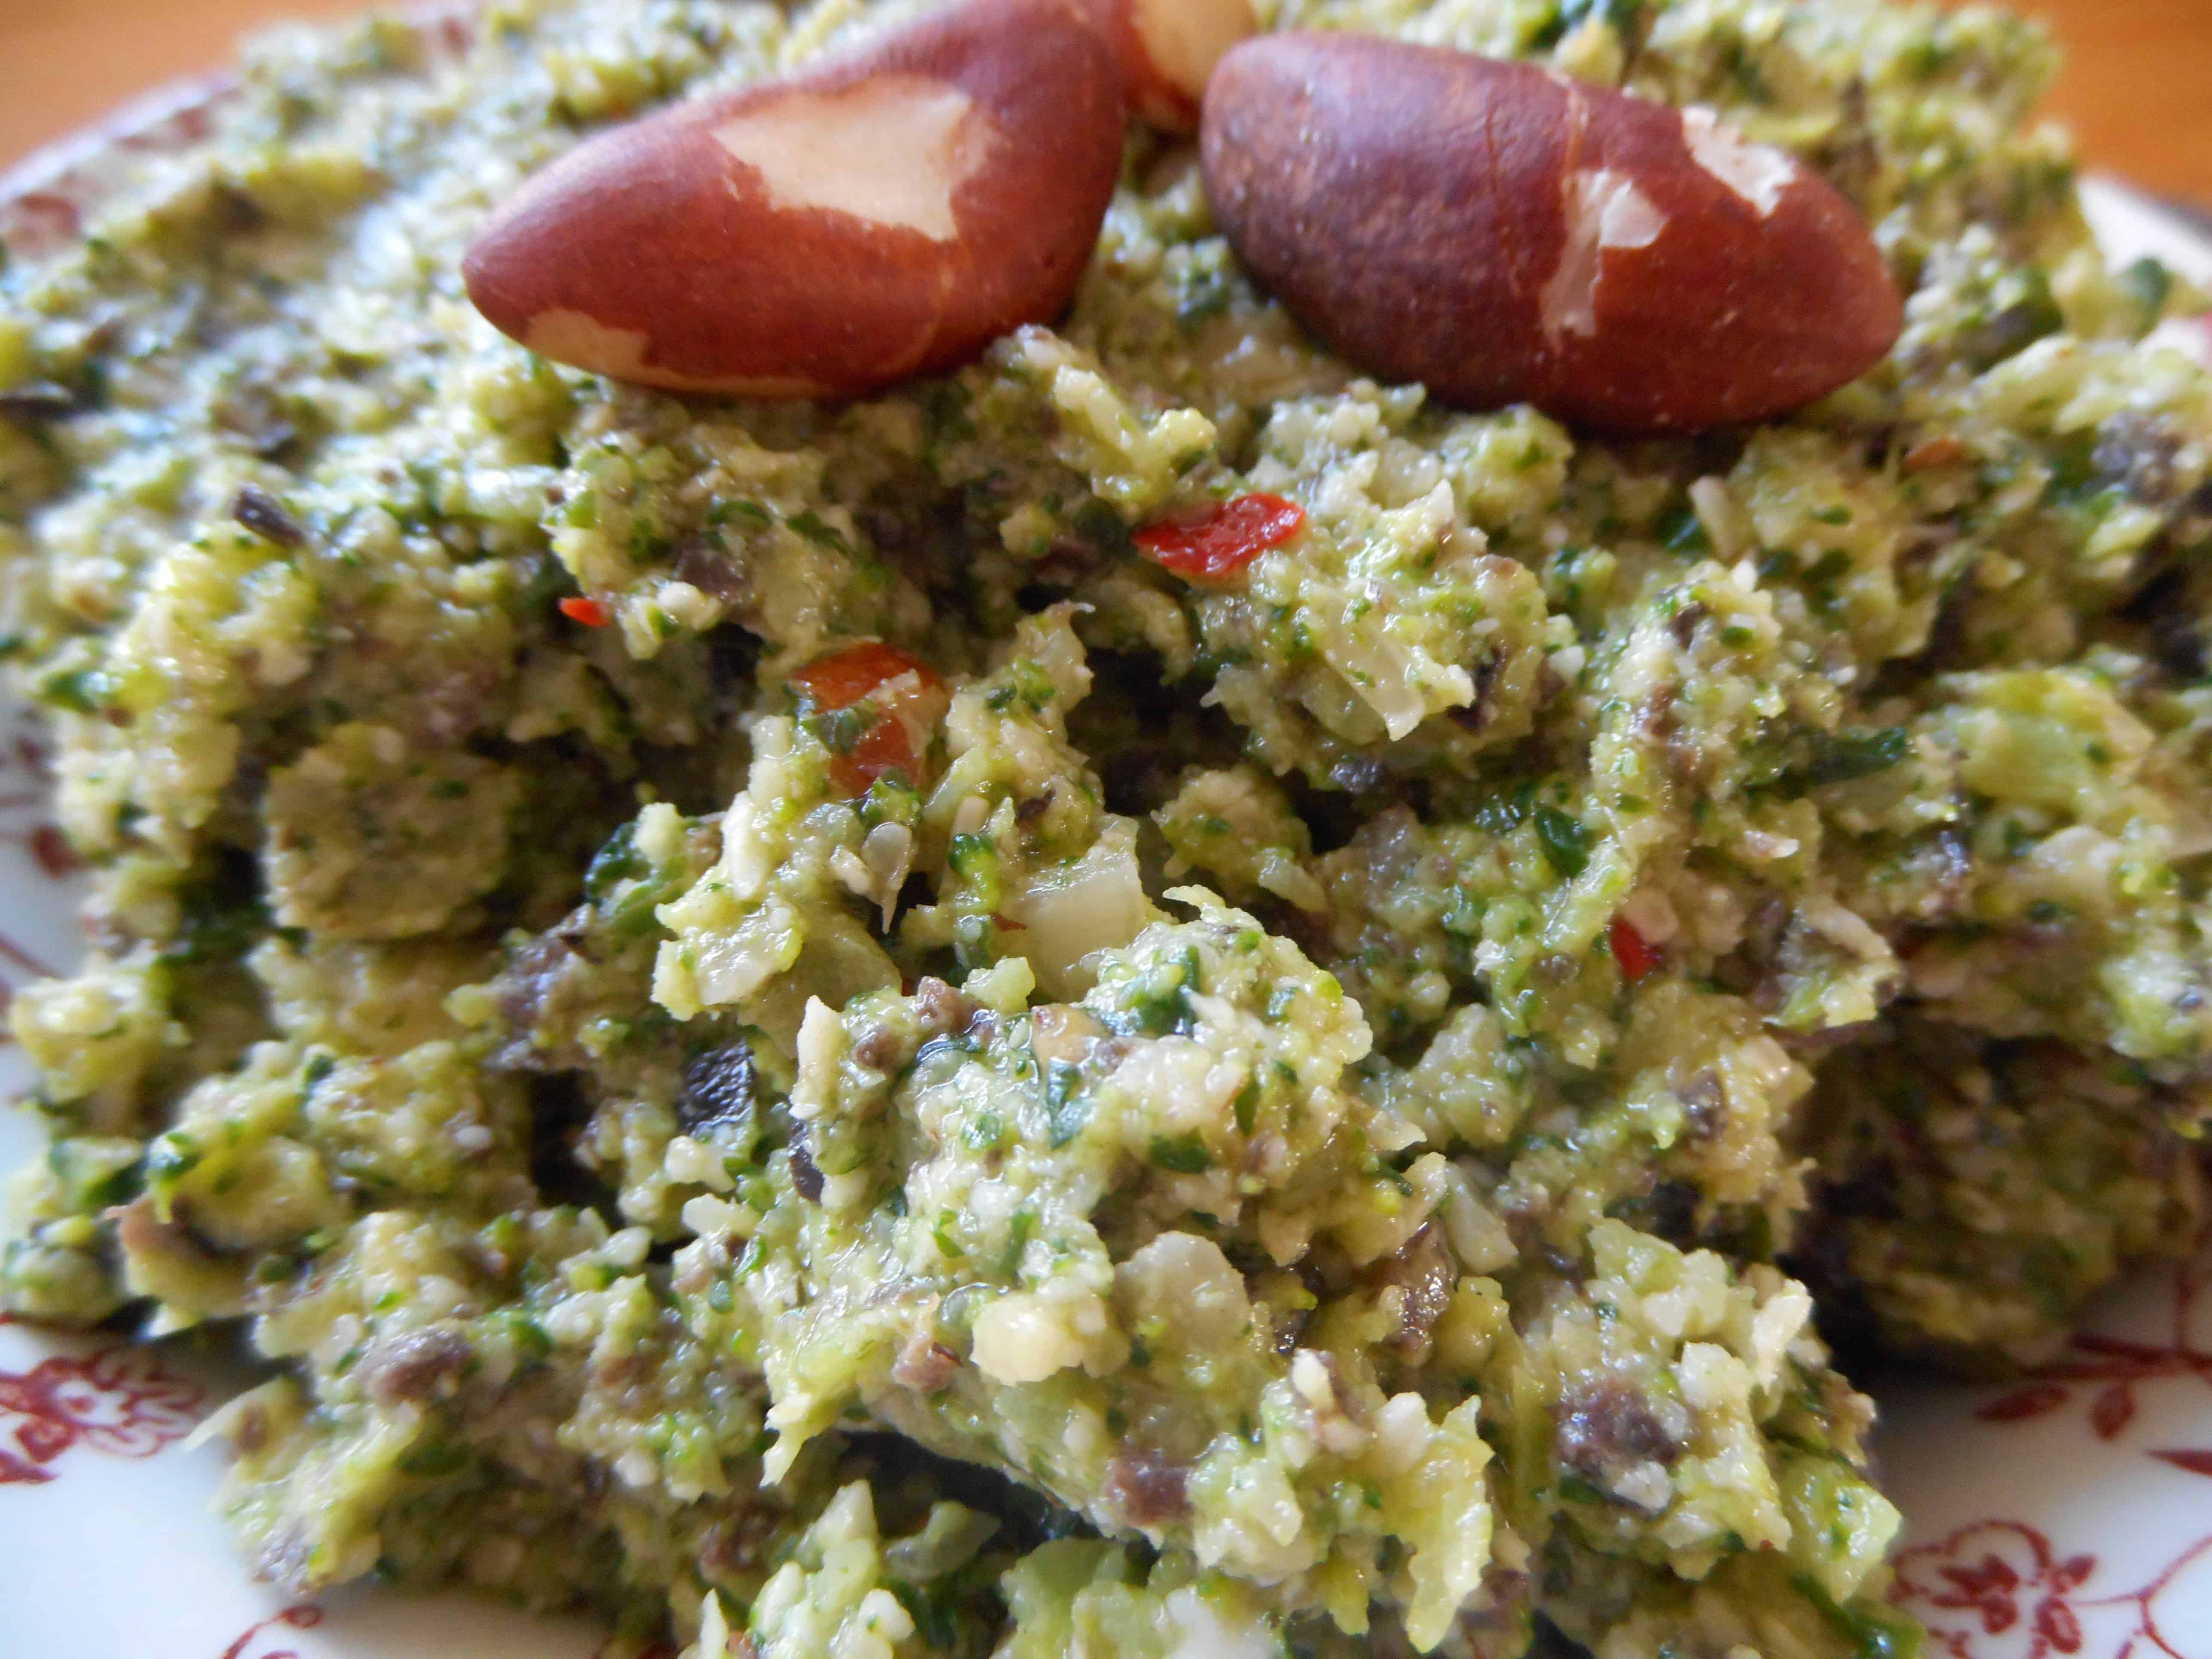 BROCCOLI PESTO GLUTEN FREE WHEAT FREE THE GLUTEN FREE BLOGGER (8)